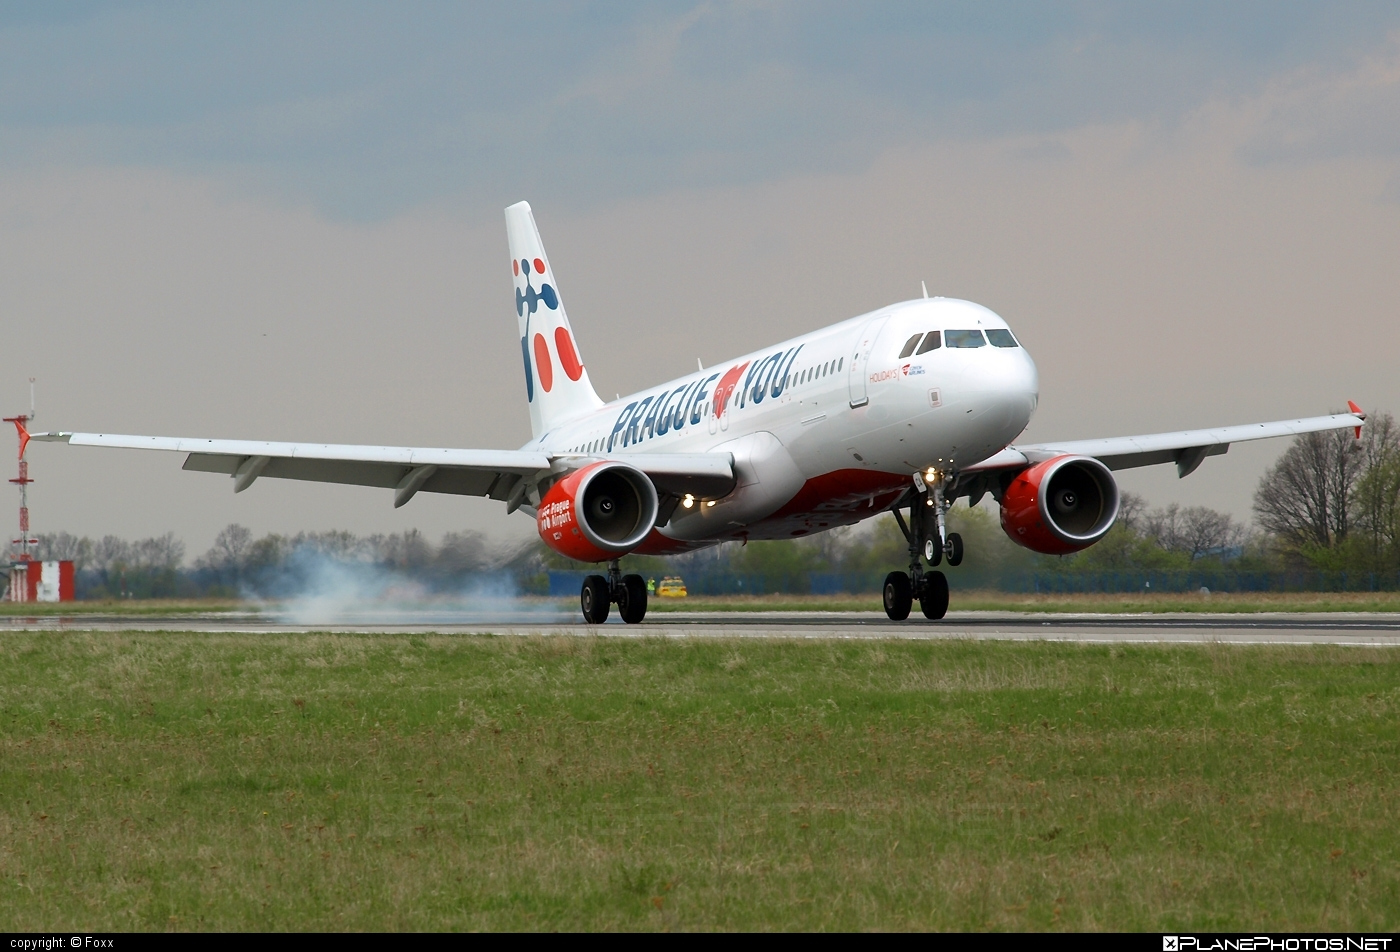 Airbus A320-214 - OK-HCA operated by Holidays Czech Airlines #a320 #a320family #airbus #airbus320